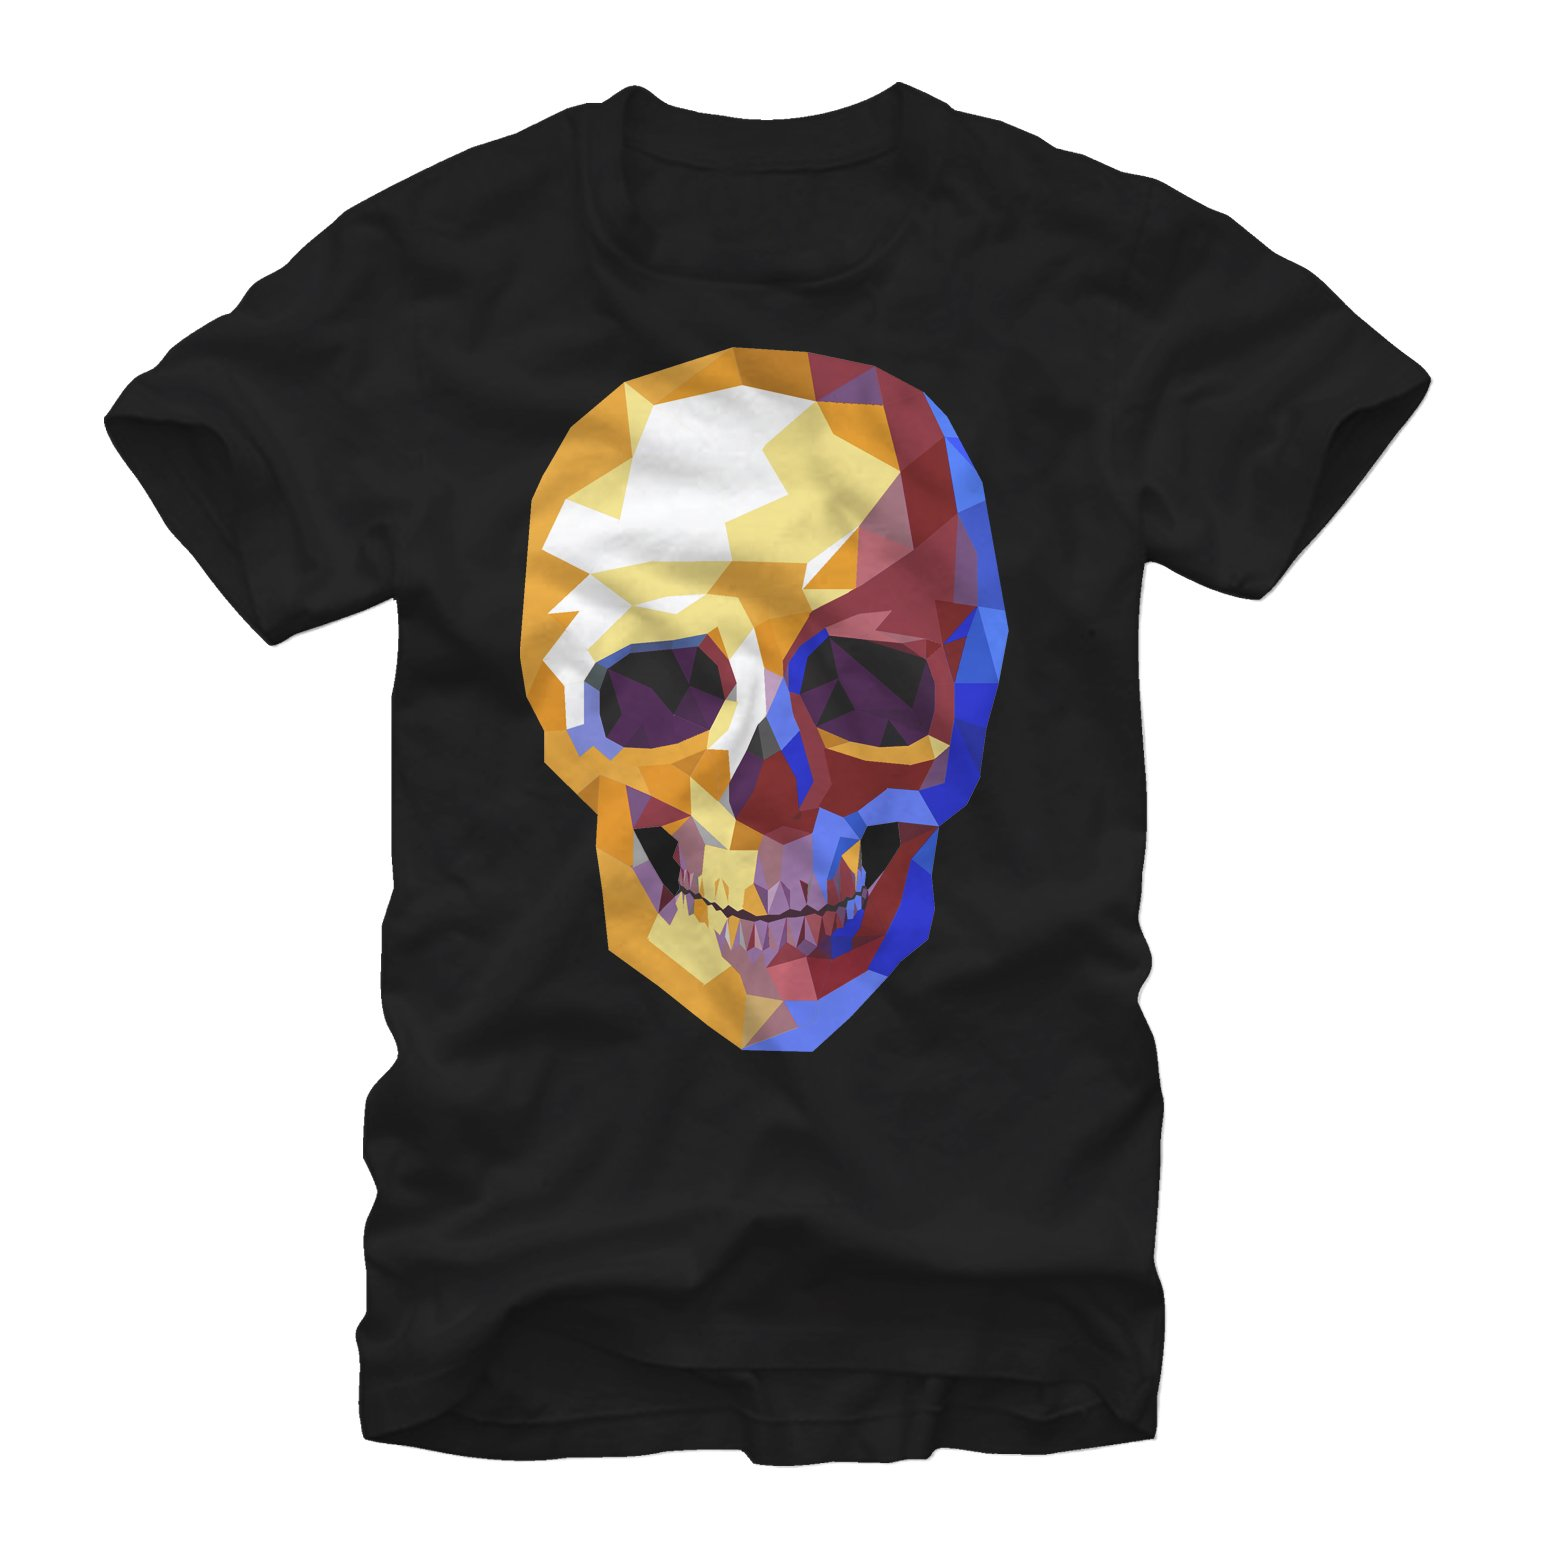 Geometric Skull Mens Graphic T Shirt